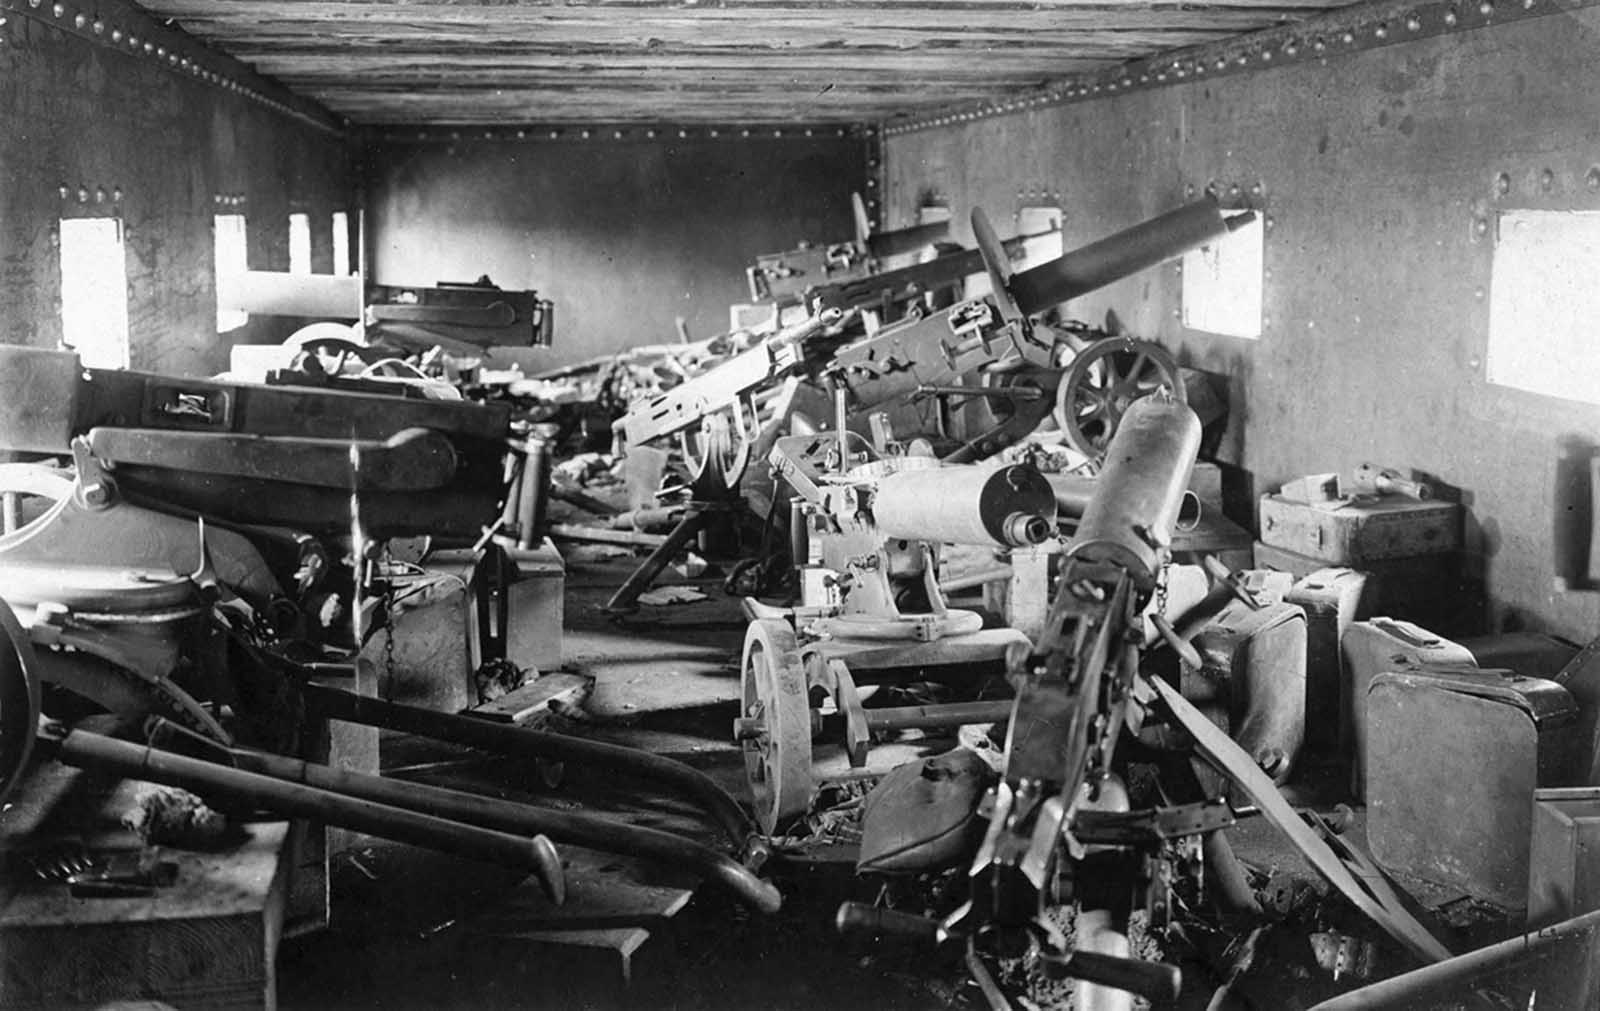 The interior of an armored train car, Chaplino, Dnipropetrovs'ka oblast, Ukraine, in the spring of 1918. At least nine heavy machine guns are visible, as well as many ammunition cases.